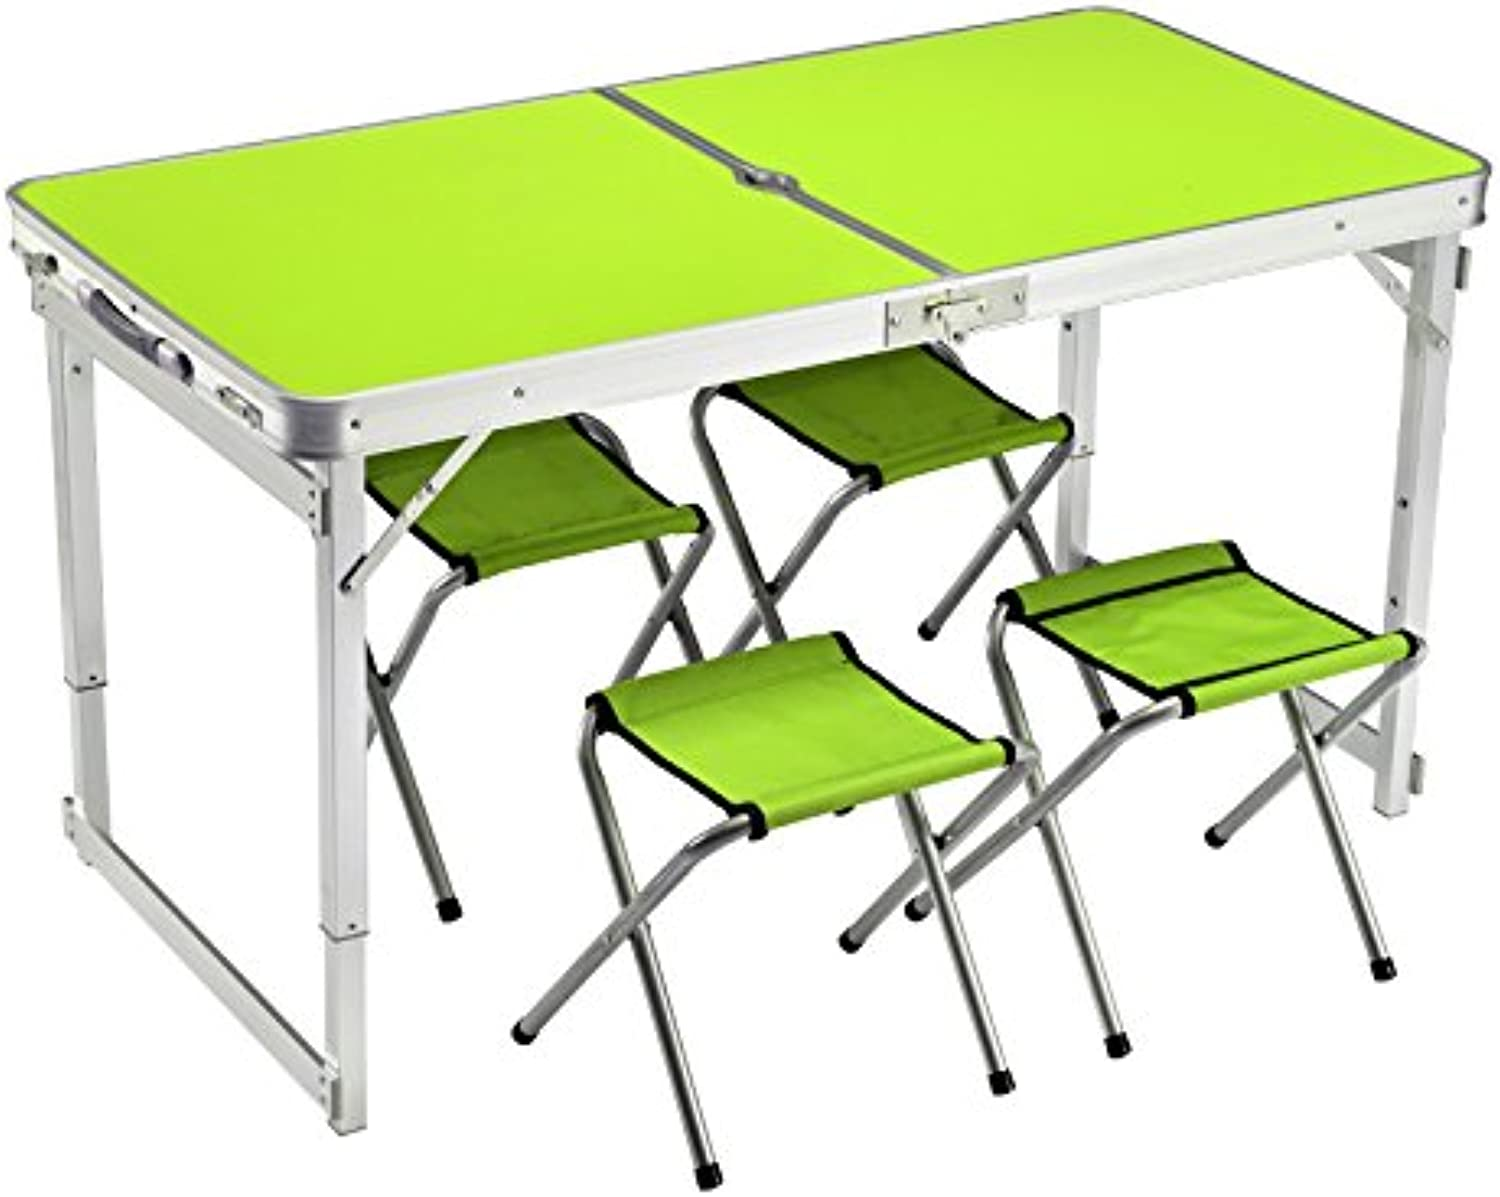 Xing Lin Outdoor Table Outdoor Leisure Full Aluminum Beach Picnic Picnic Fishing SelfDriving Tour Lifting Portable Folding Table And Chairs, Upgrade Stable Fresh Green 4 Cloth Stool